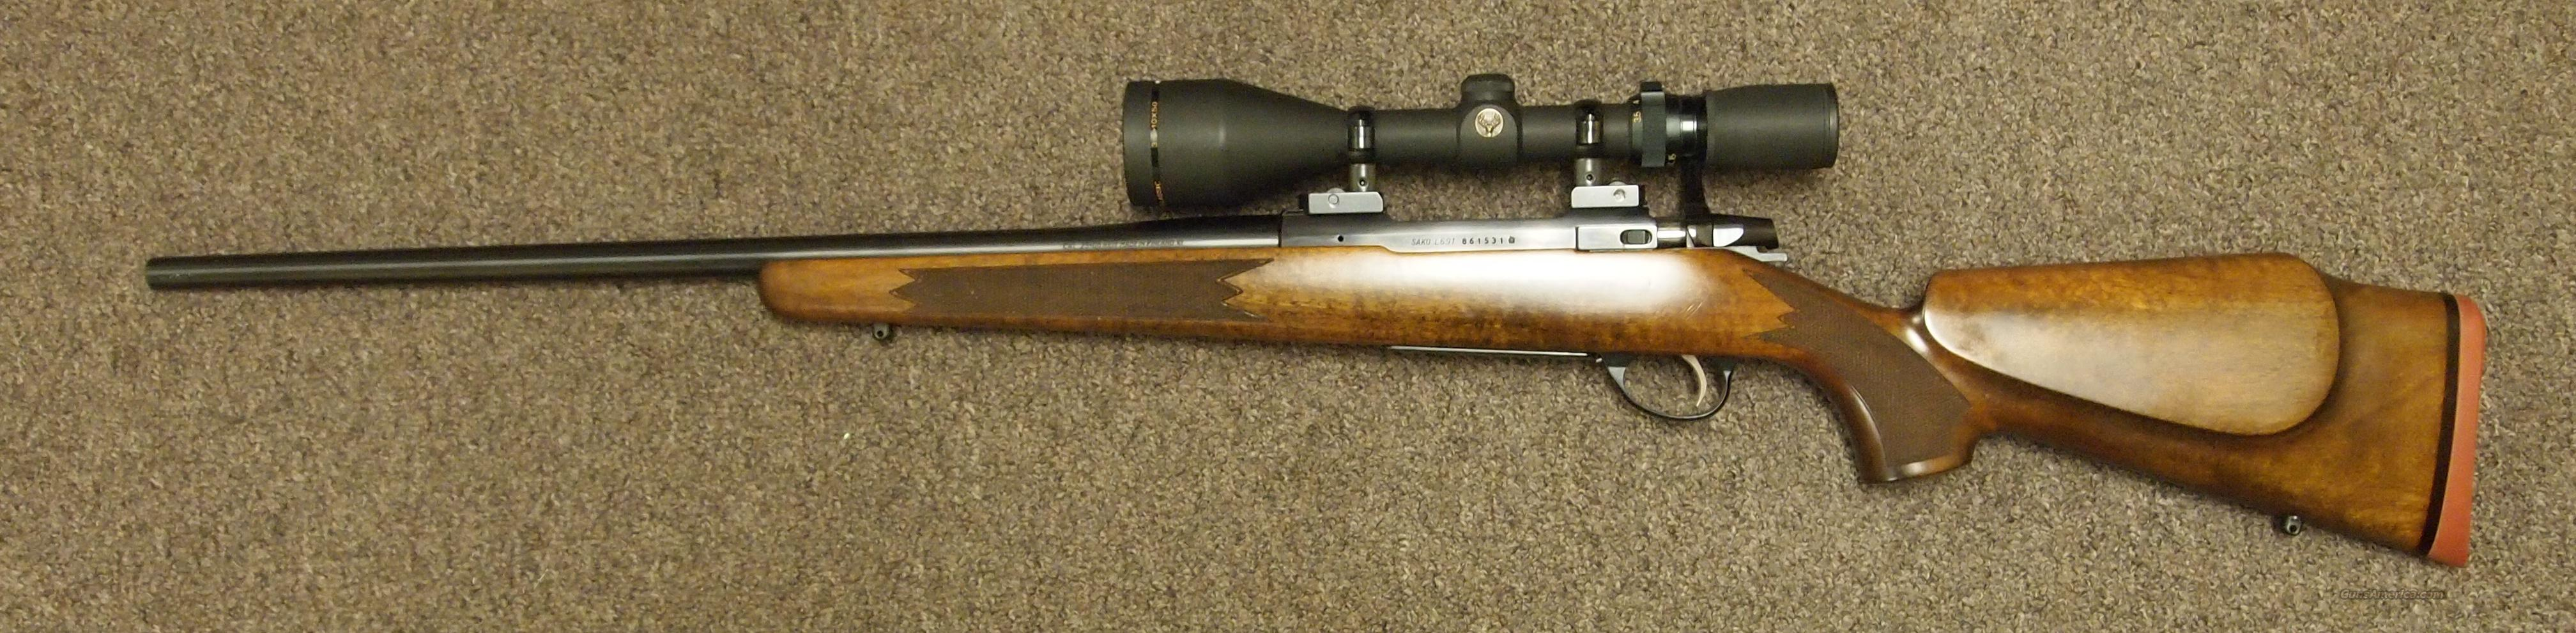 SAKO L691 .25-06  Guns > Rifles > Sako Rifles > Other Bolt Action